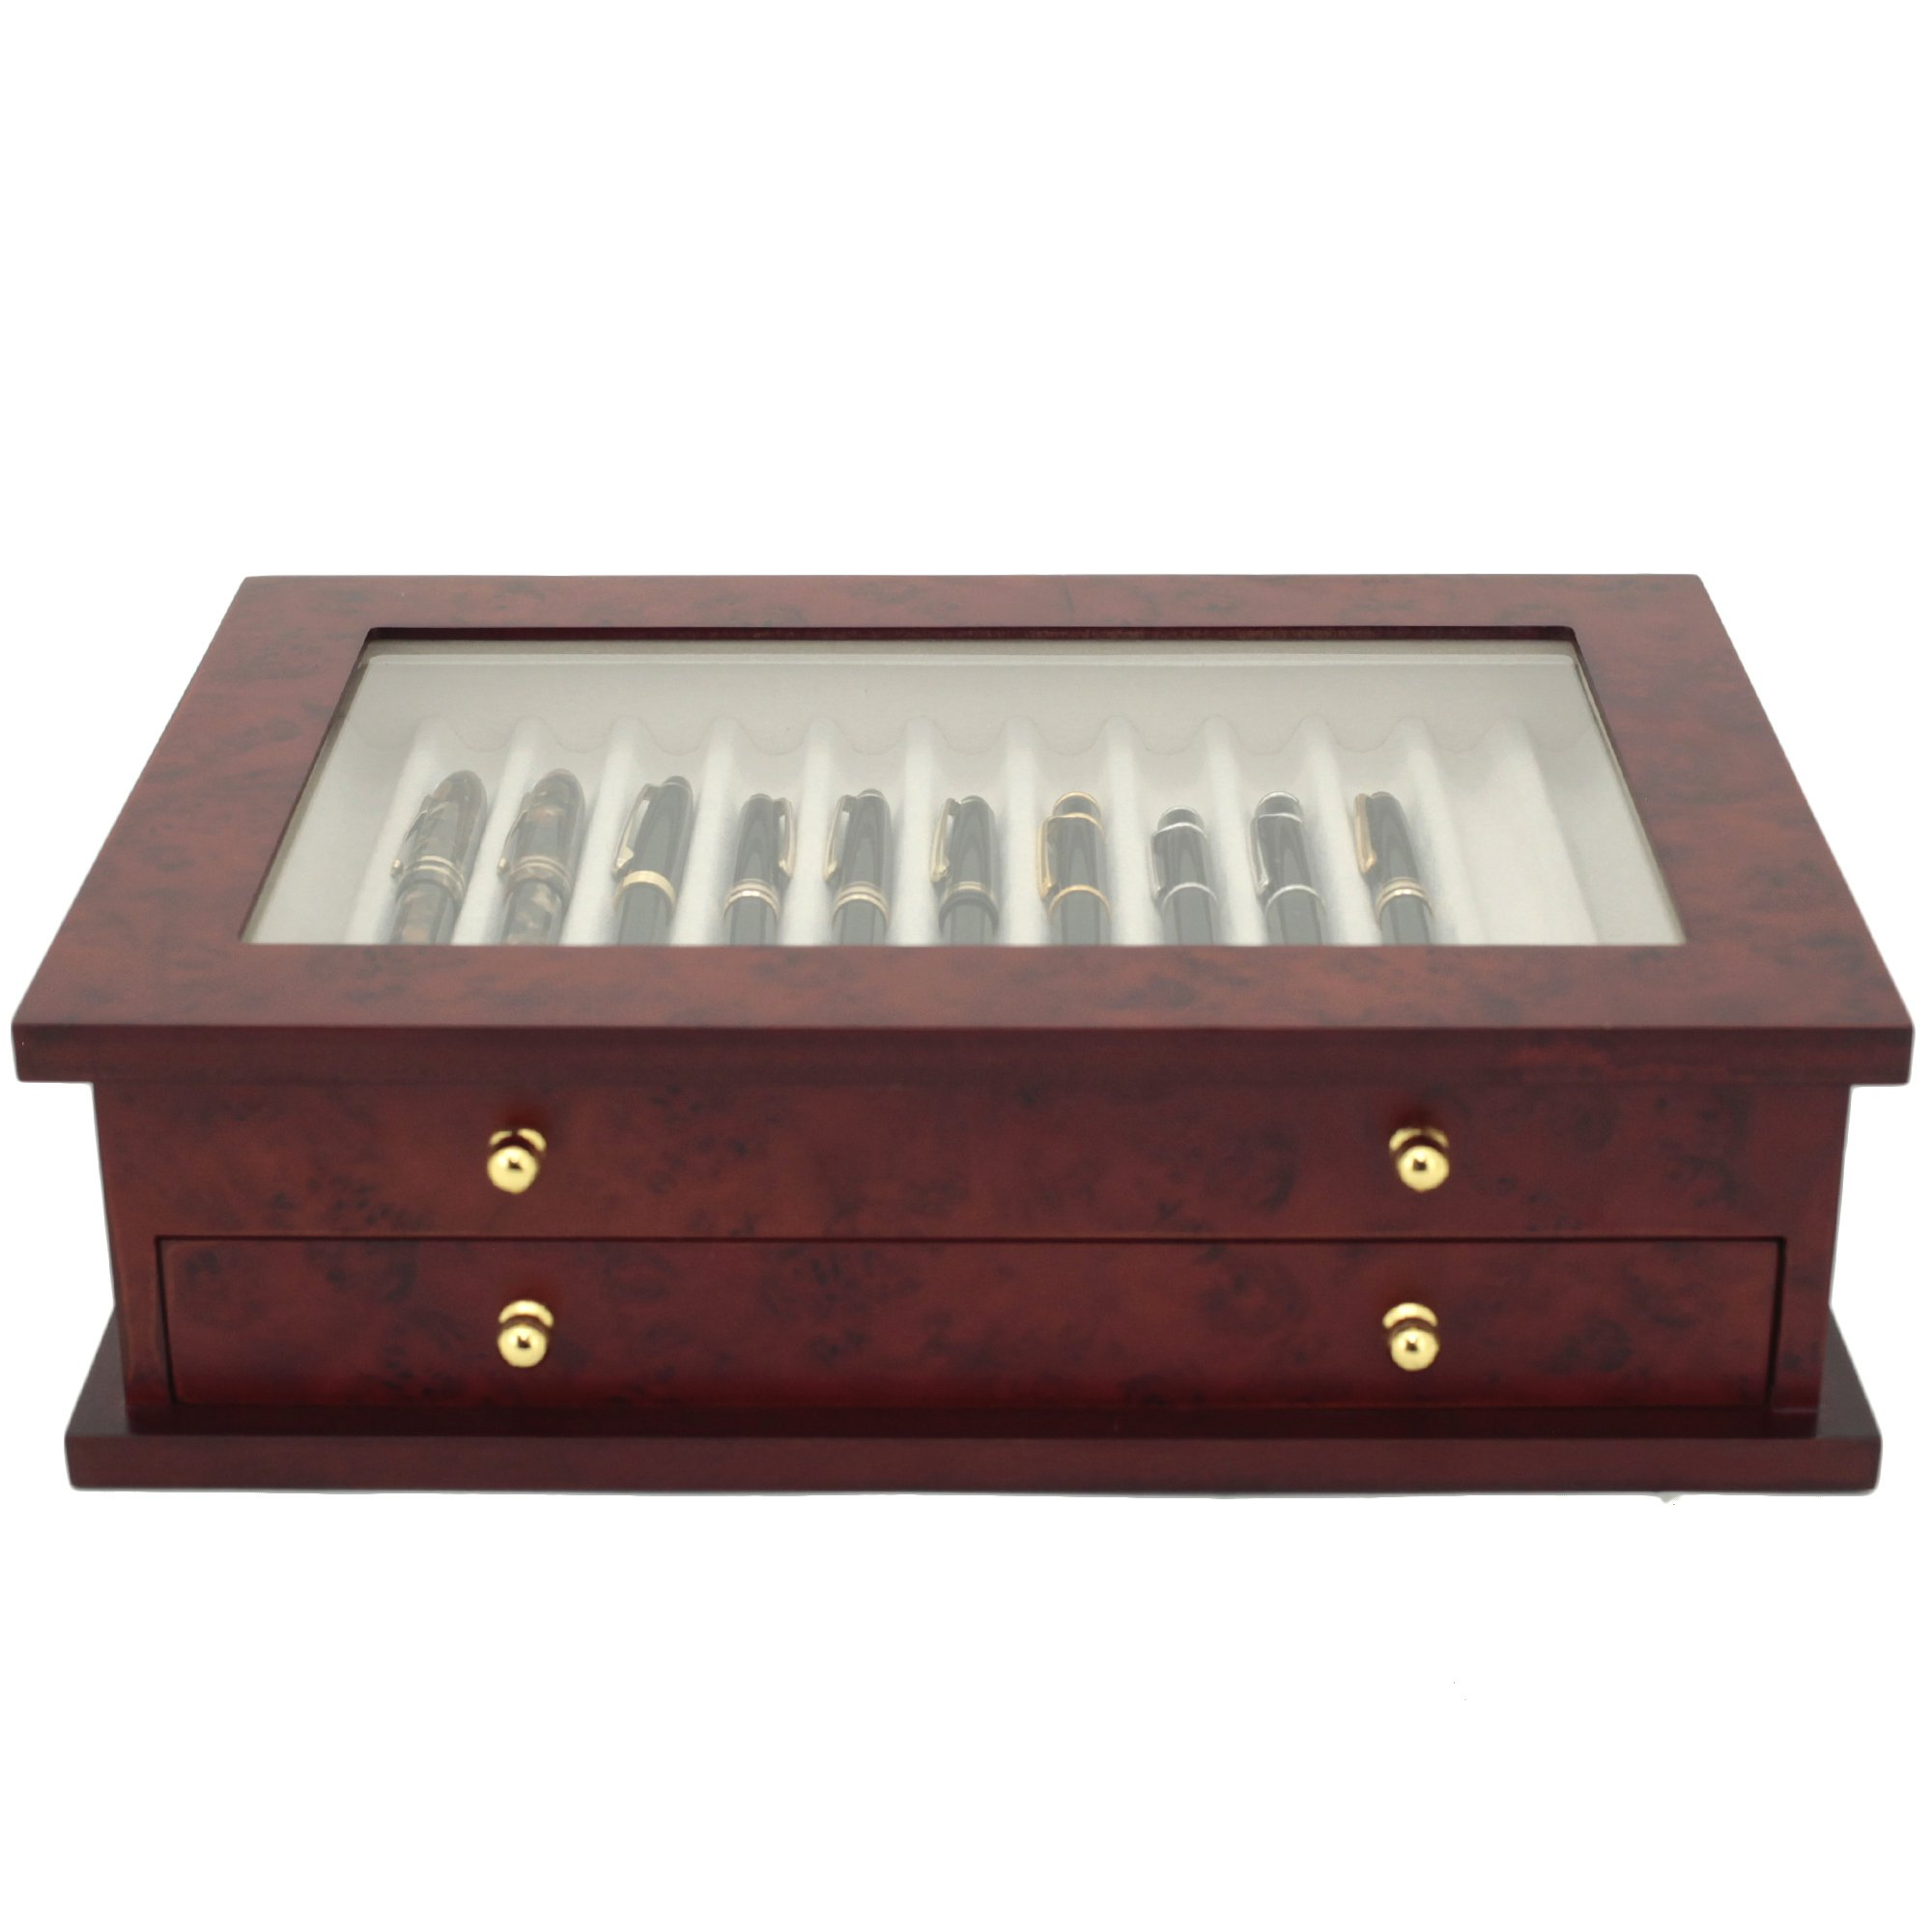 Pen Box 26 Fountain Pens Writing Instruments Wood Constructed Glass Display Case (Burlwood) by Tech Swiss (Image #4)